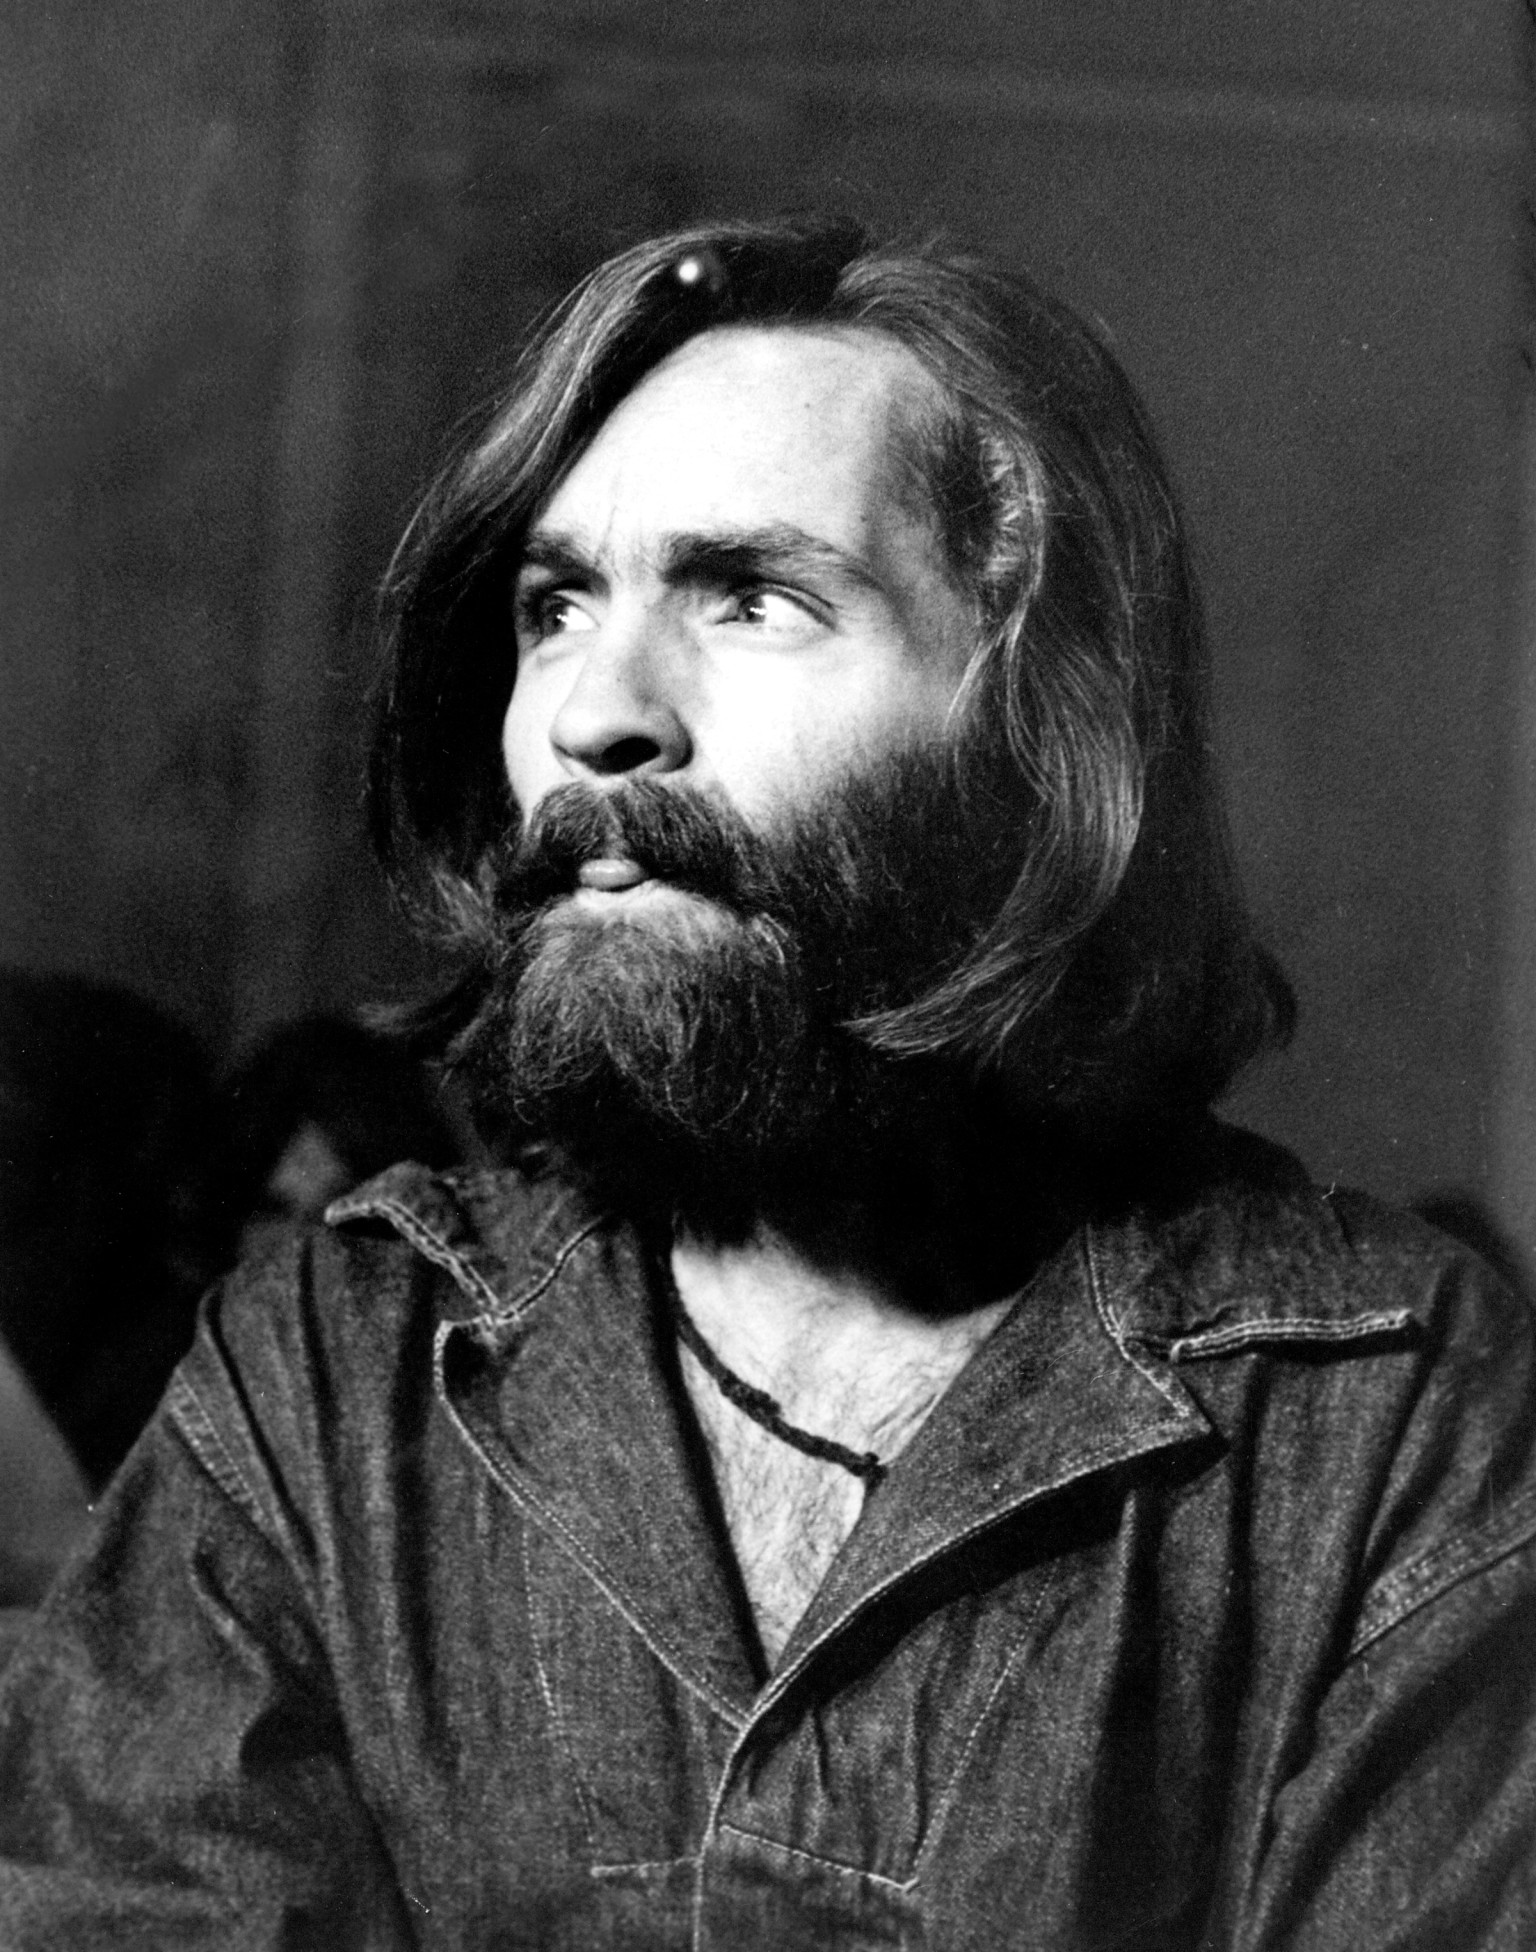 Things You Didn't Know About Charles Manson (PHOTOS) | HuffPost